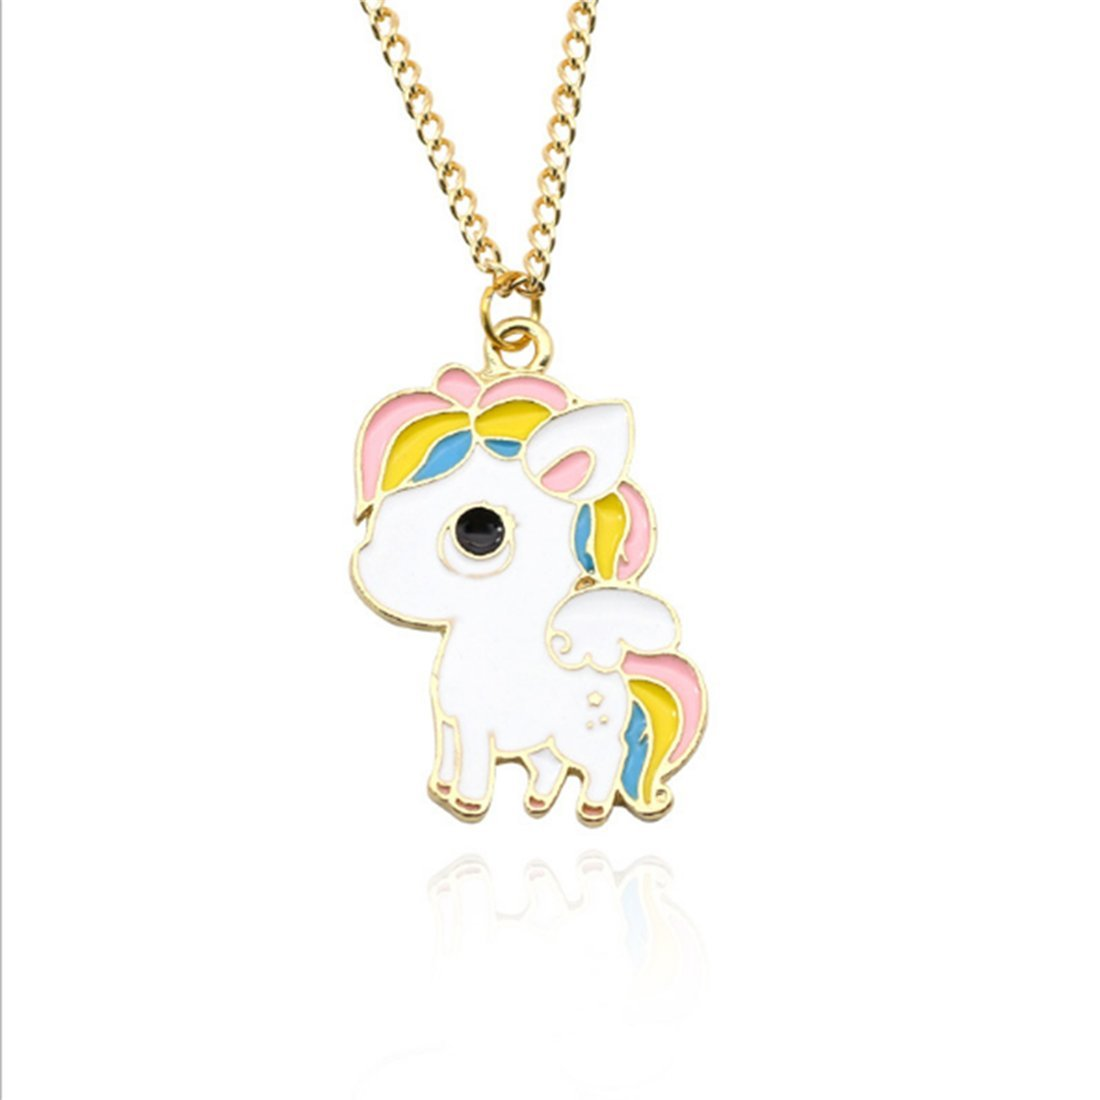 VWH Women Girls Alloy Necklace Colorful Unicorn Pendant Clavicle Bone Chain Necklace Jewelry Gift